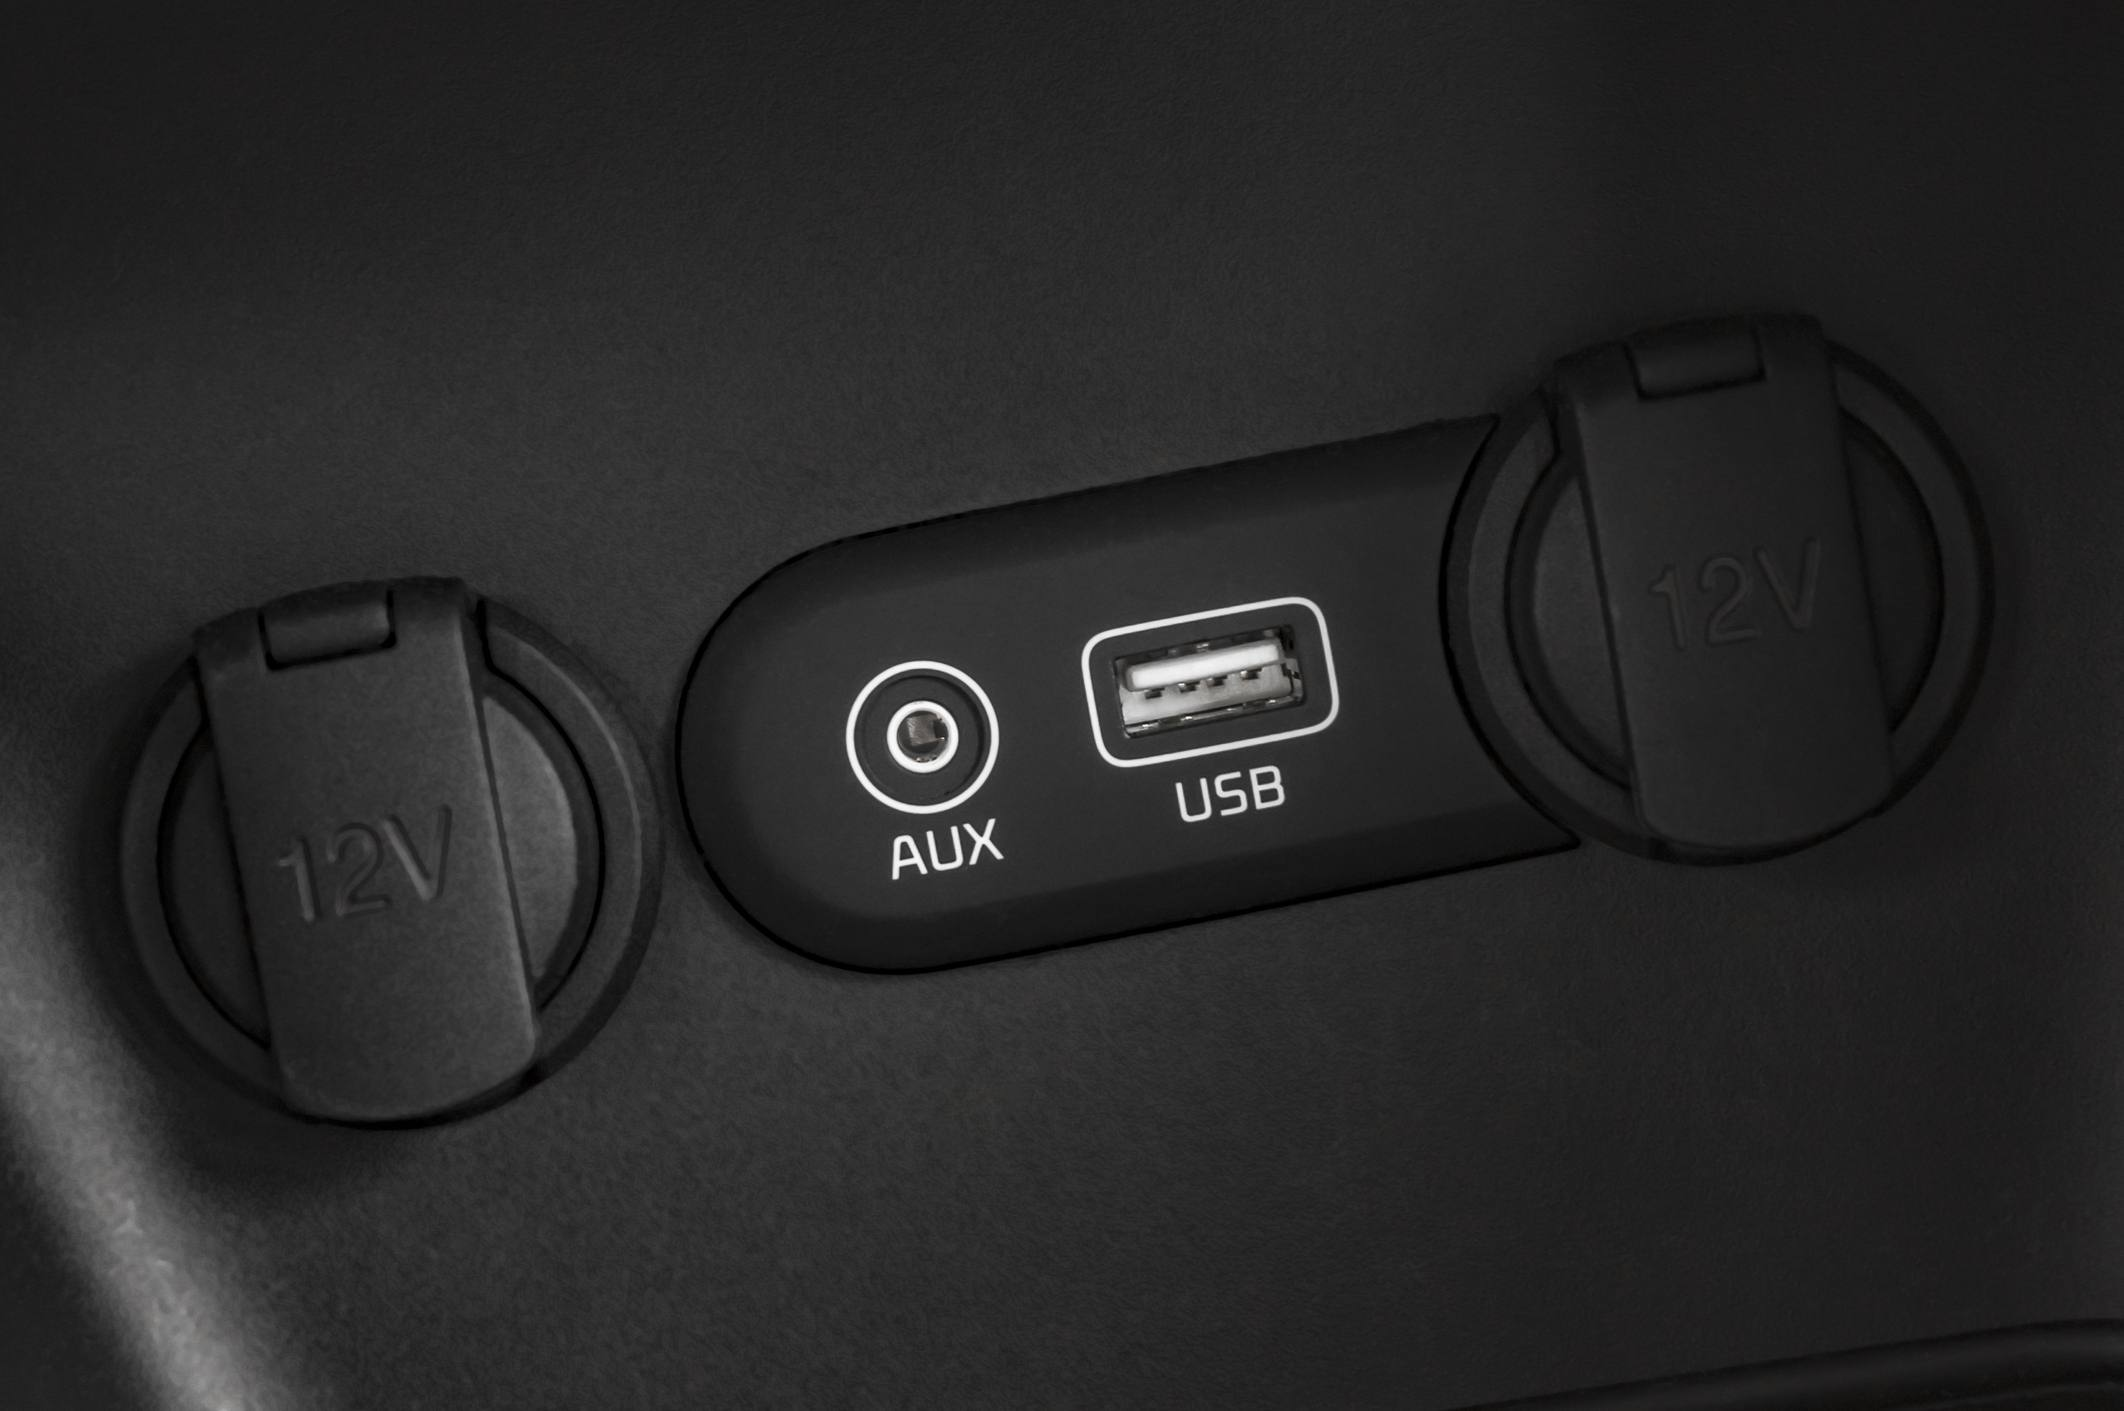 Power options in a car